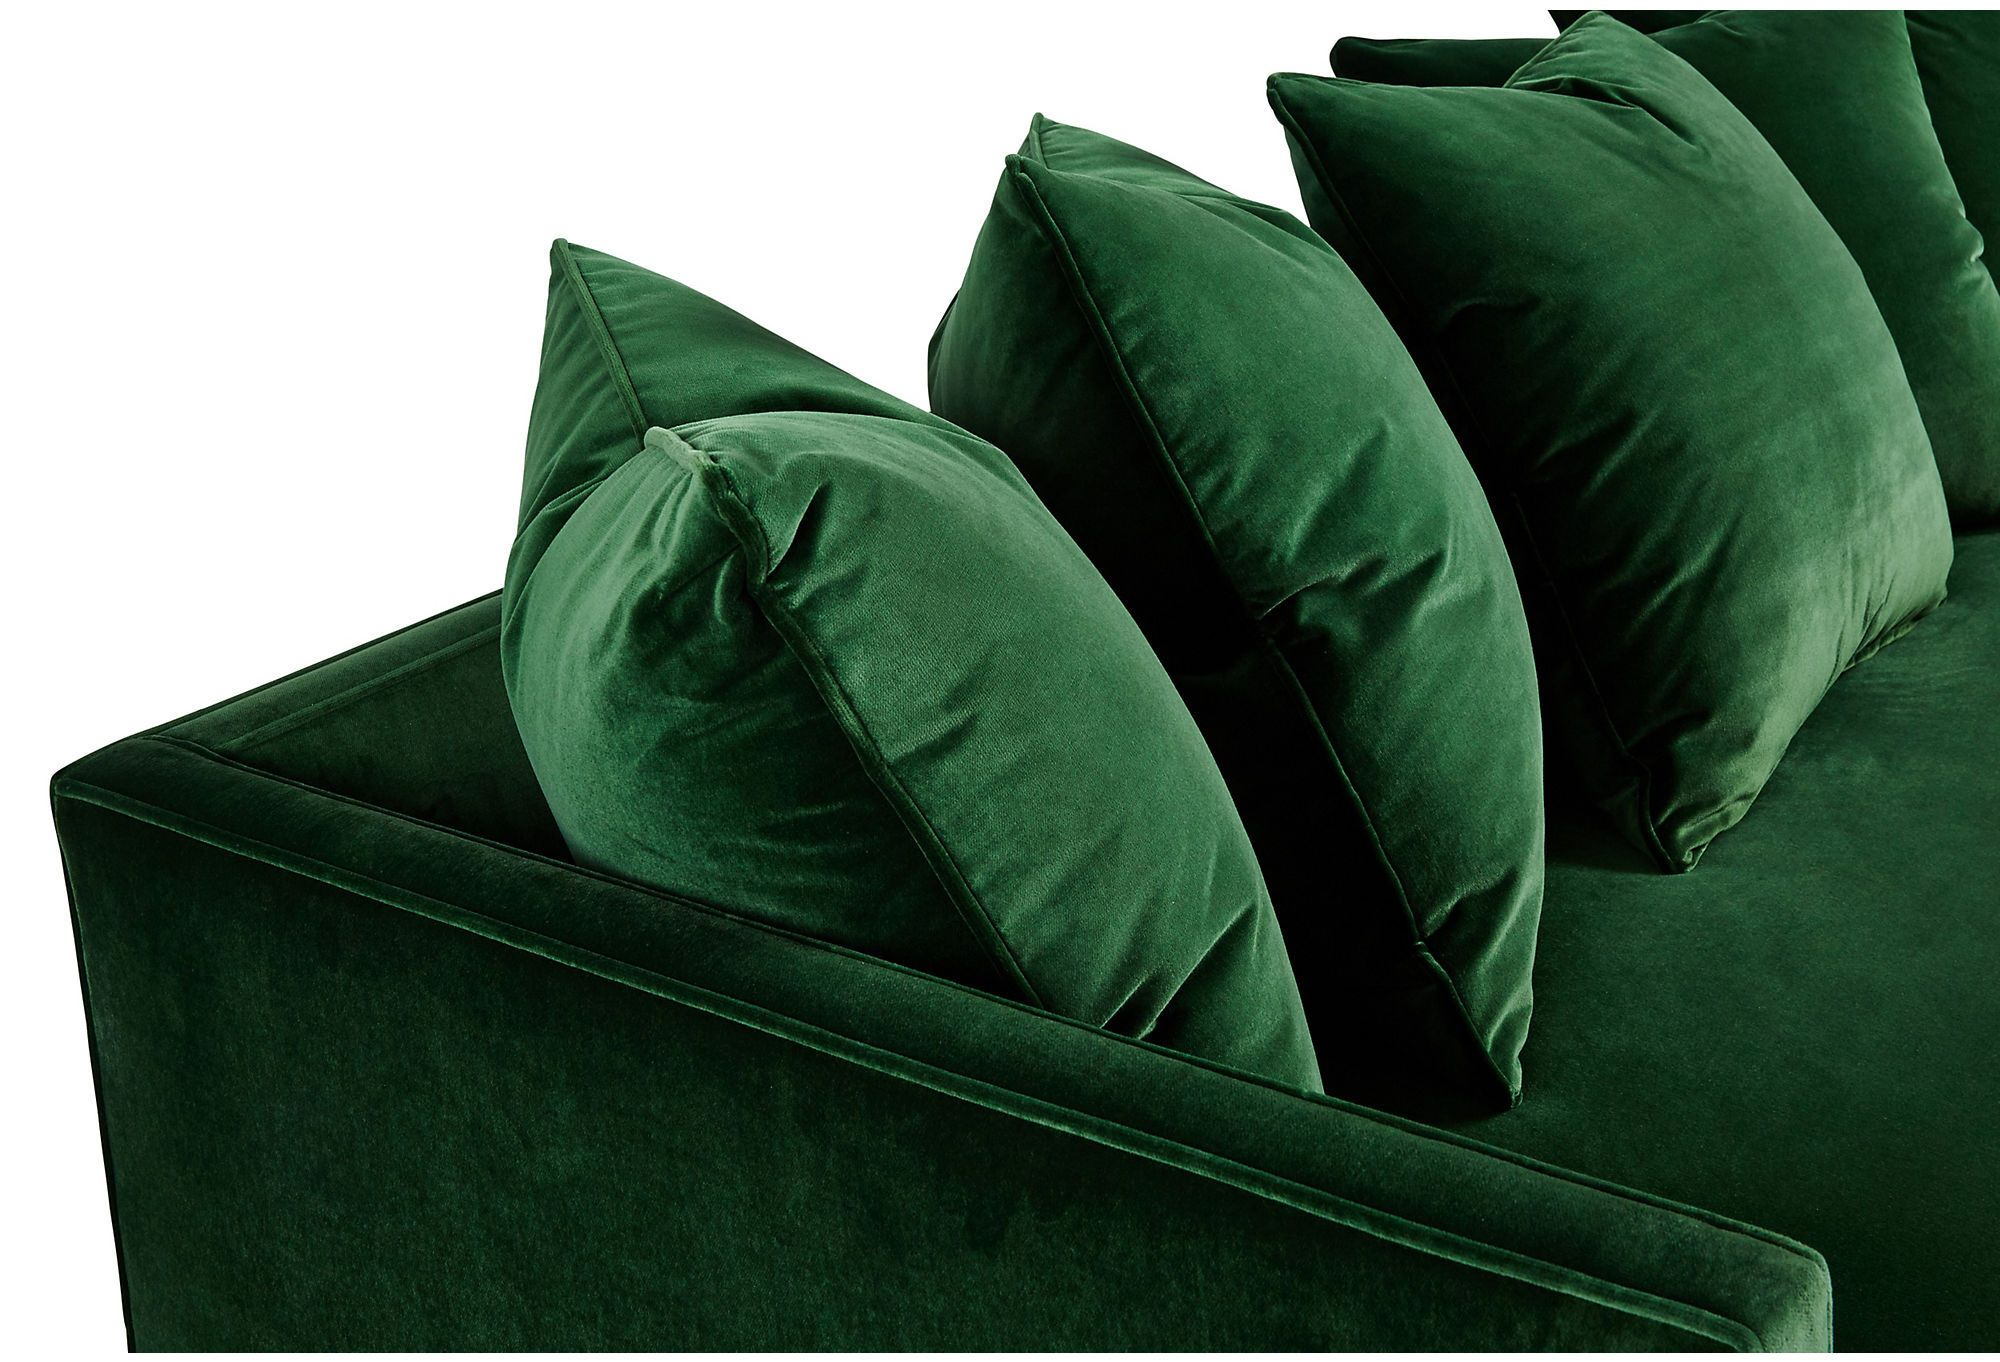 Superb Buy Green Couch Pillows Starburst Yellow Lumbar Pillow Cover Ibusinesslaw Wood Chair Design Ideas Ibusinesslaworg